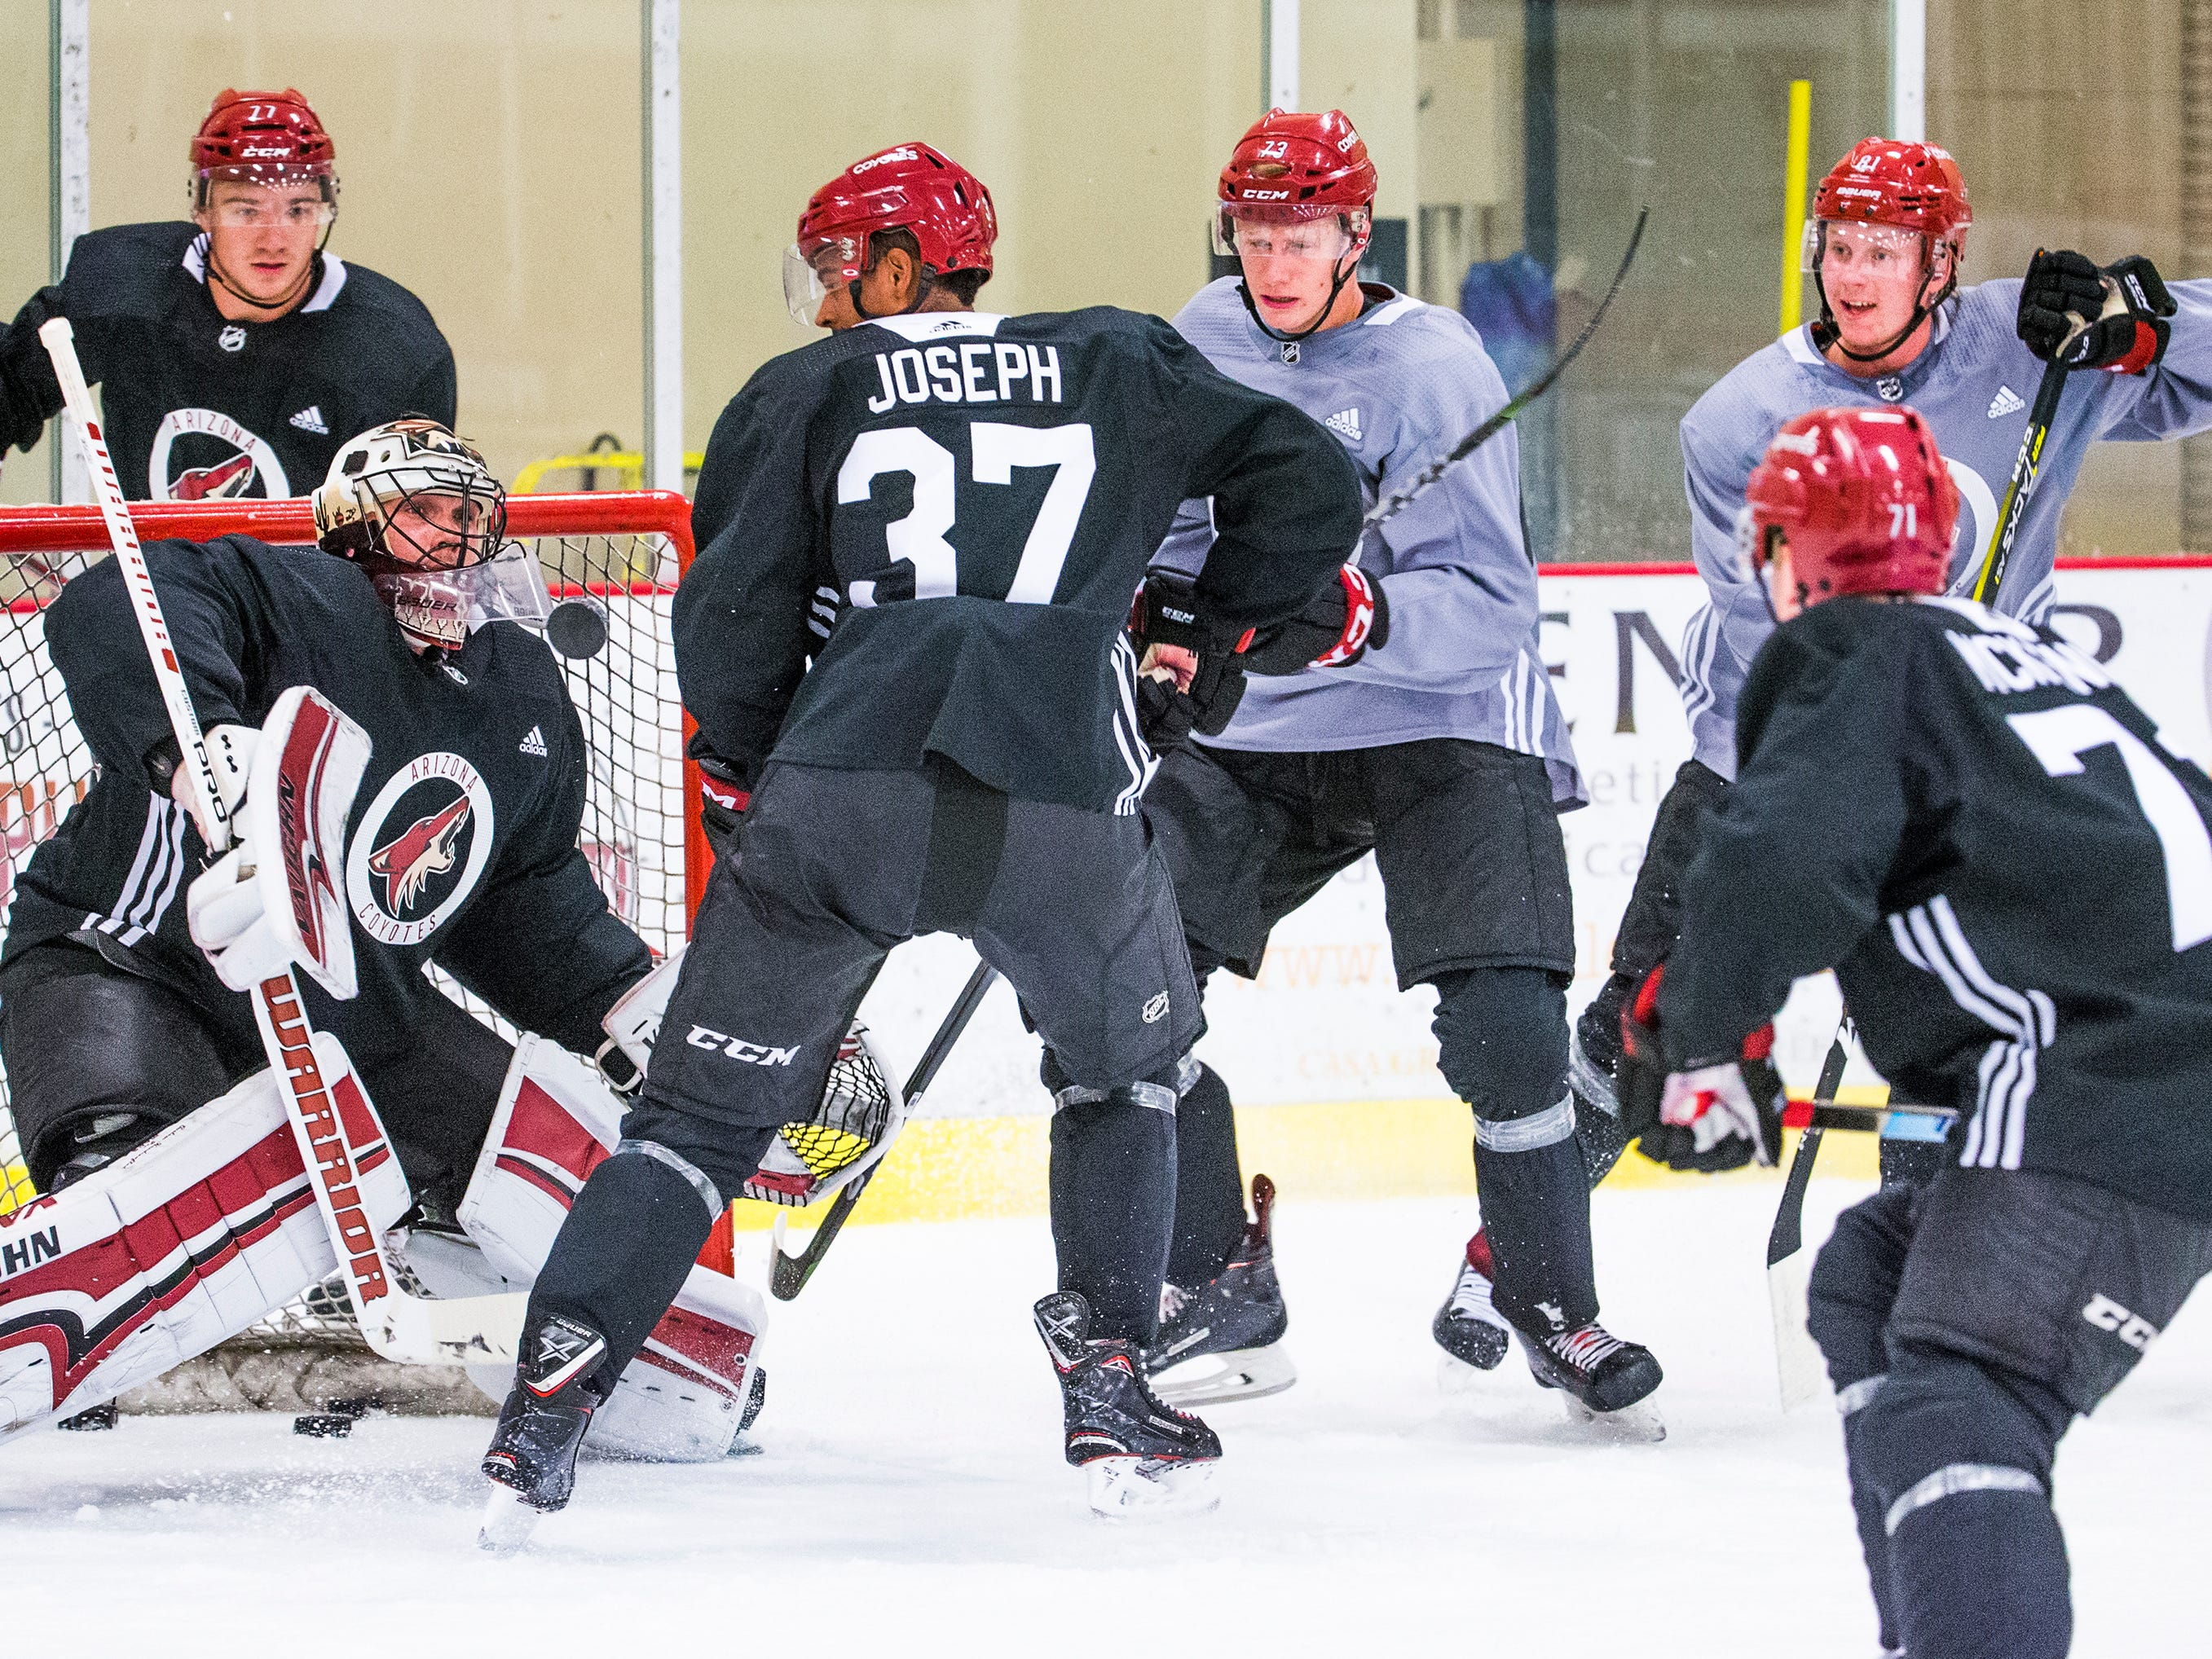 Pierre-Olivier Joseph, #37, takes a shot on goal during Arizona Coyotes rookie camp at Ice Den Scottsdale, Friday, September 7, 2018.